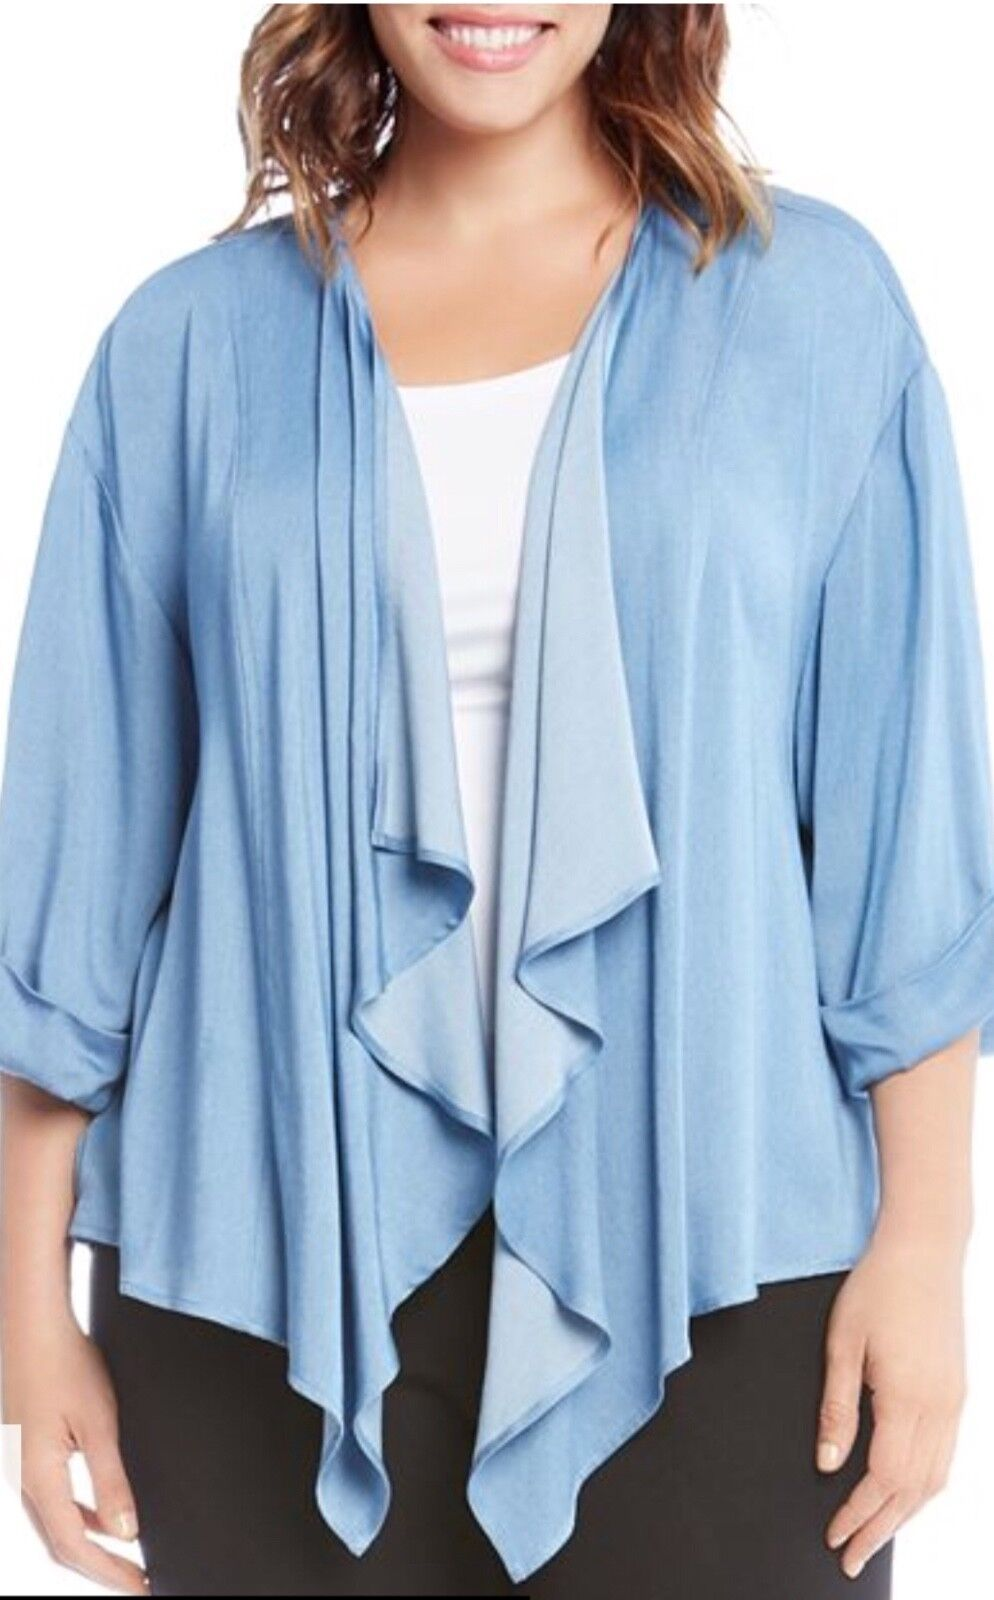 NEW  Karen Kane Plus Blau Rolled Sleeves Open Front Drape Jacket Blouse Top 1X